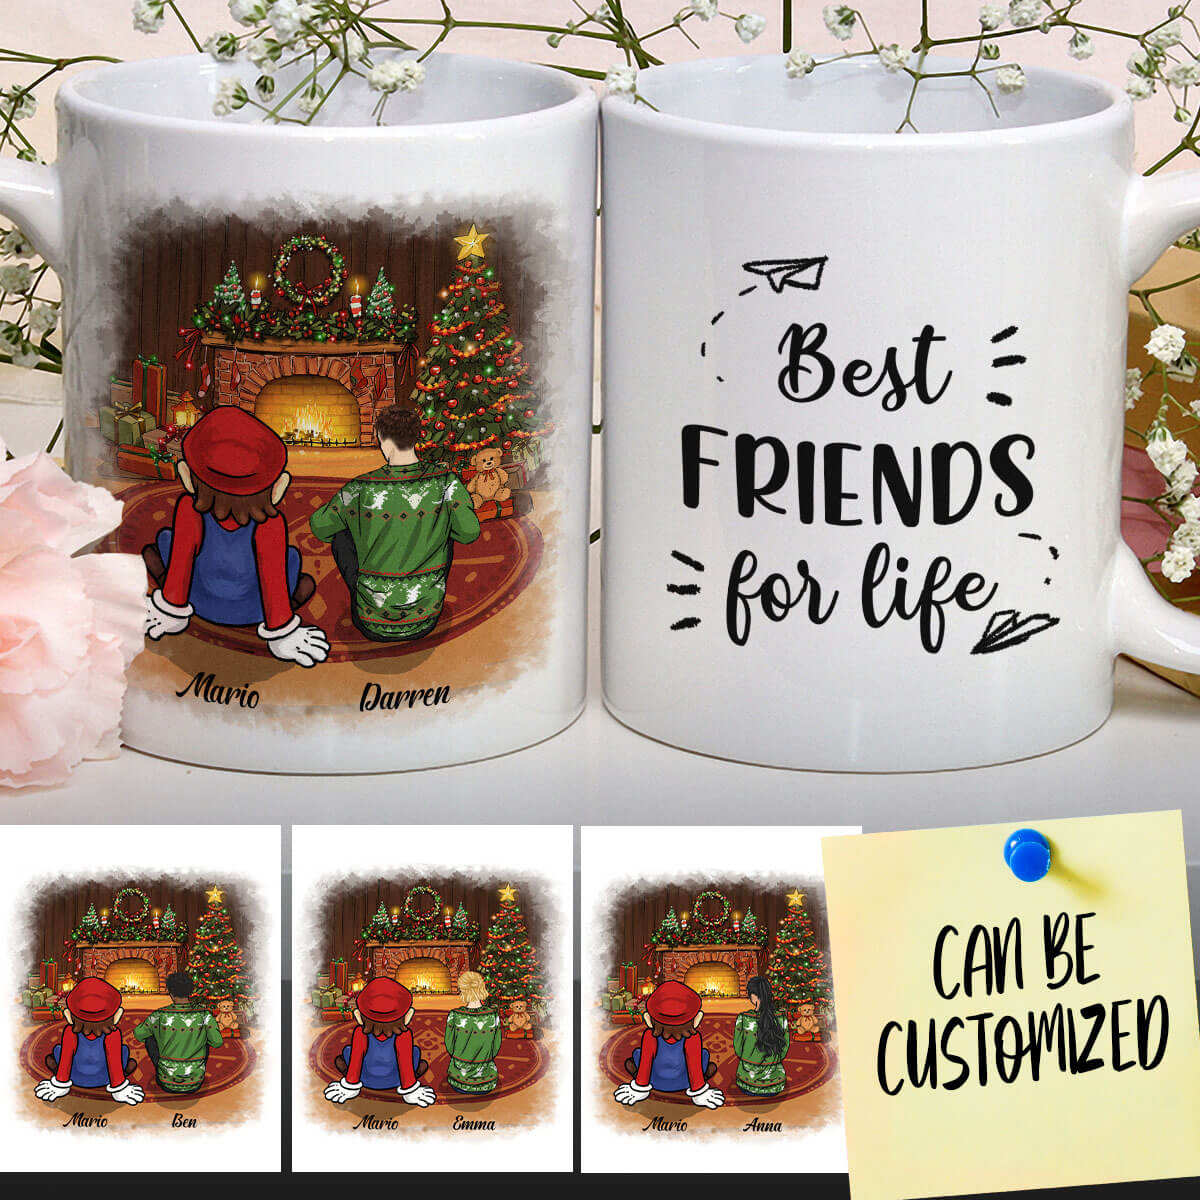 Personalized Mario Beside The Fireplace On Christmas Night Art Mug